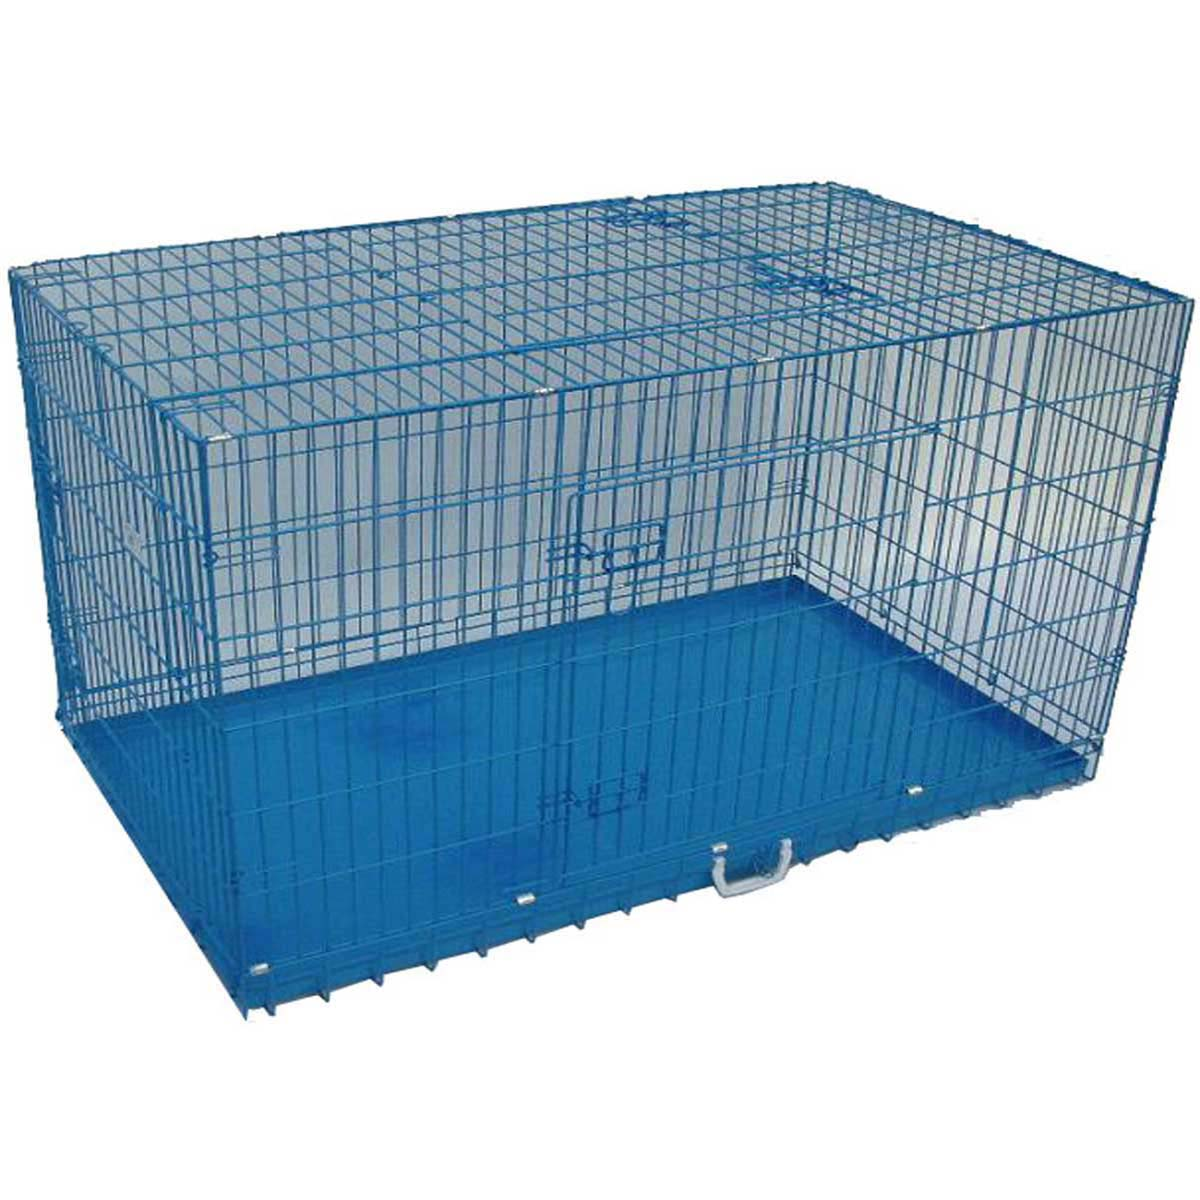 Buy 3.5 Ft Blue Dog Cage,small dog cages,large dog cages,dog cages, in low price online at Pedtindiaonline